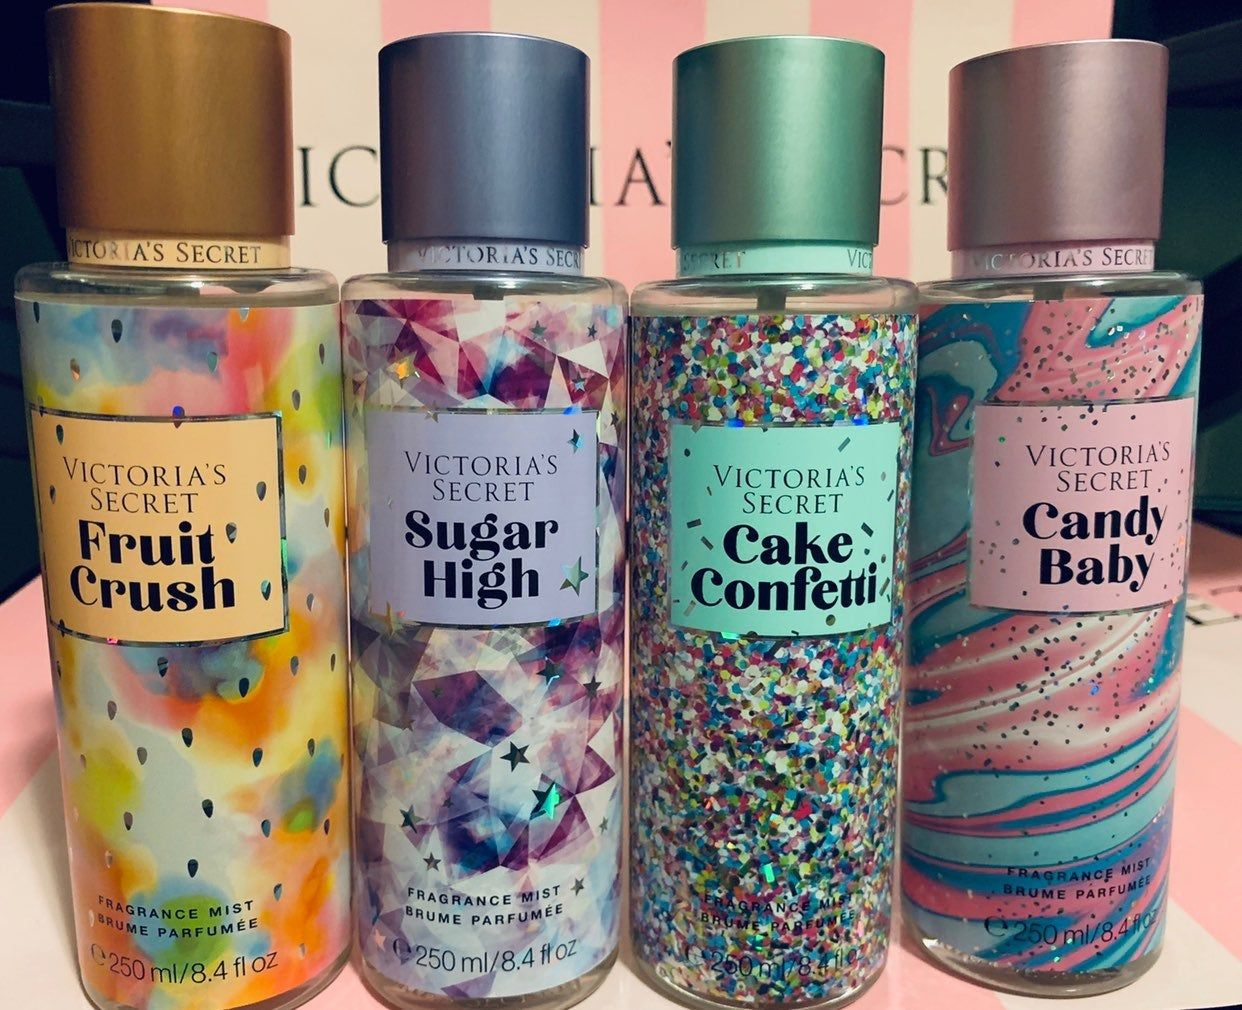 All brand new with tag fragrance mist 250ml including